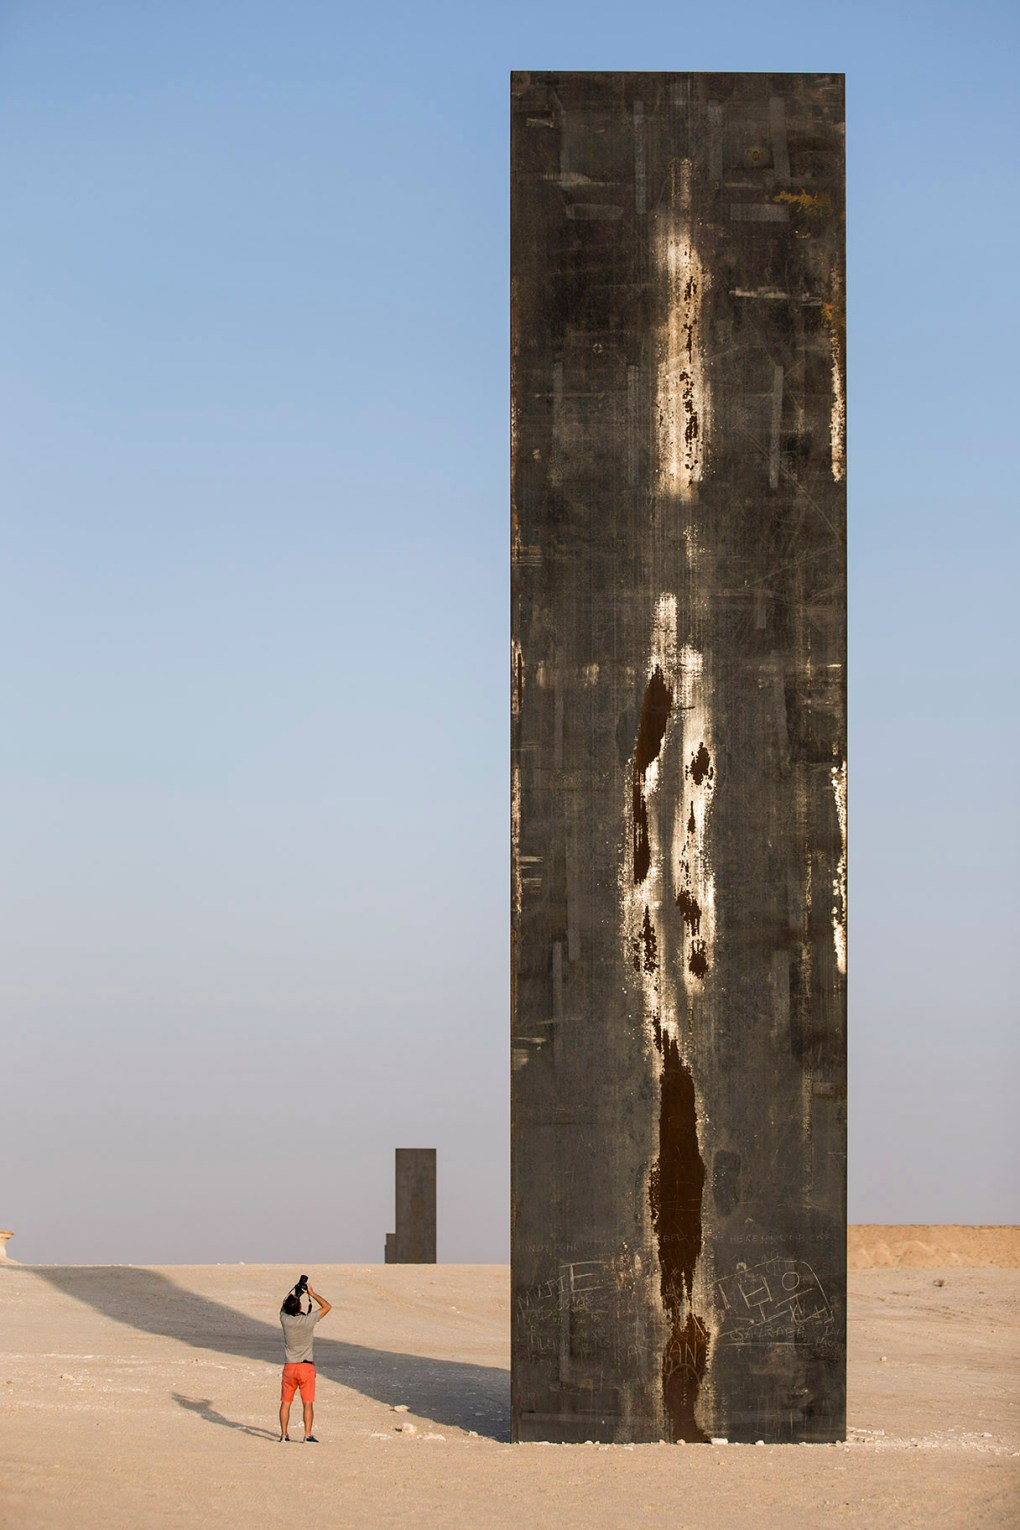 richard_serra_east_west_west_east_qatar_201014_447